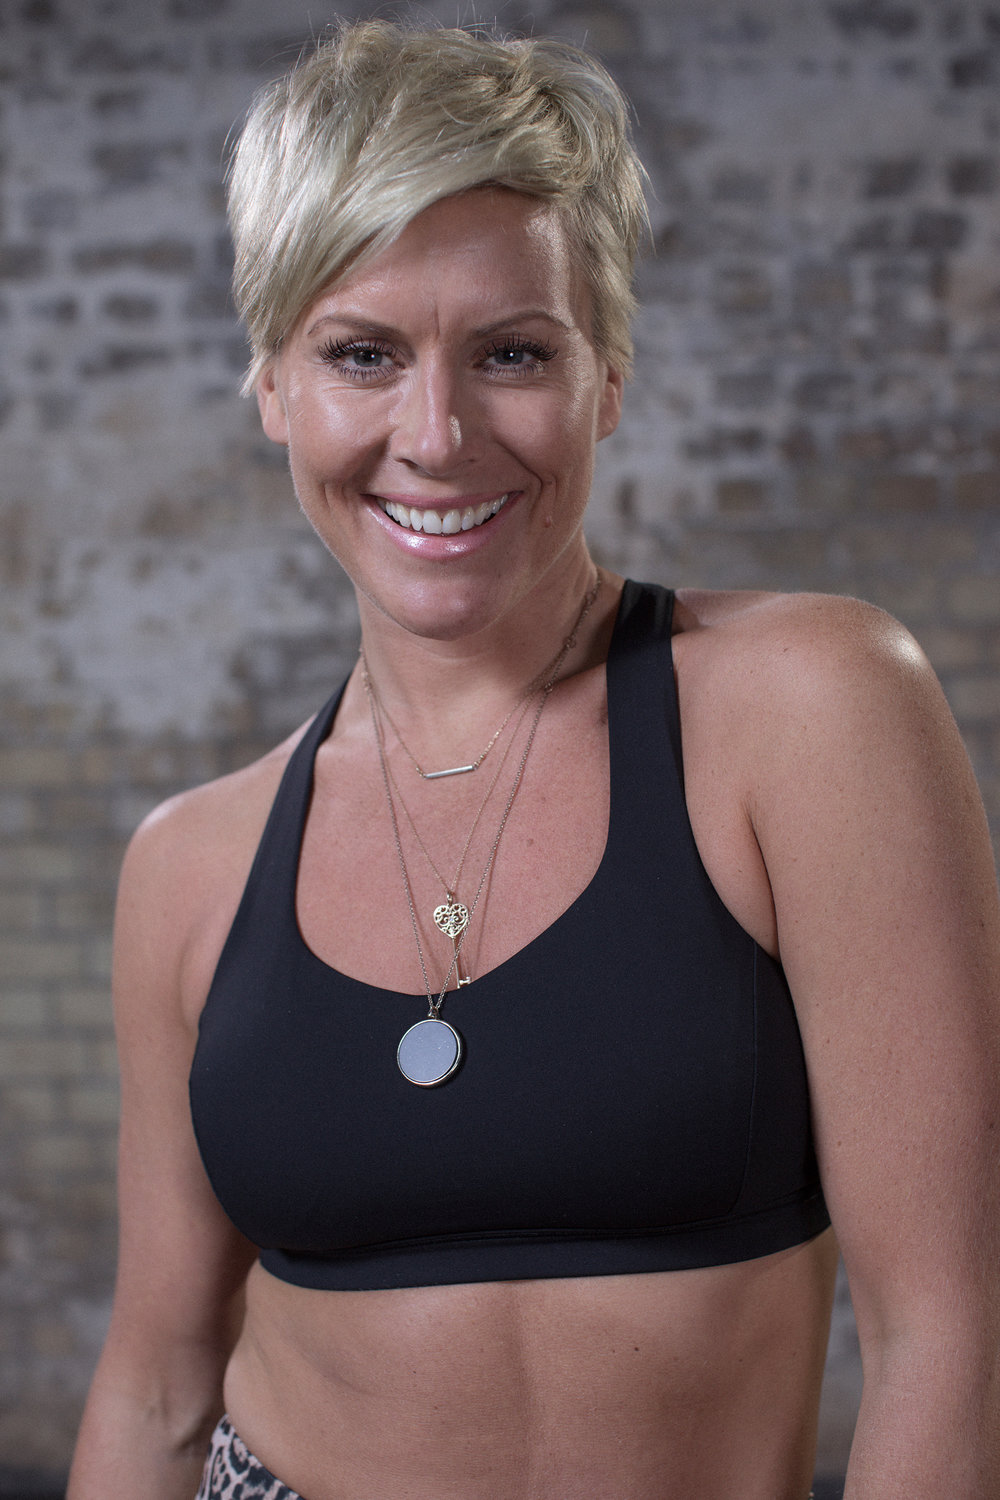 Sports & Fitness Photographer Gum Box Instructor Photoshoot Smiley Face